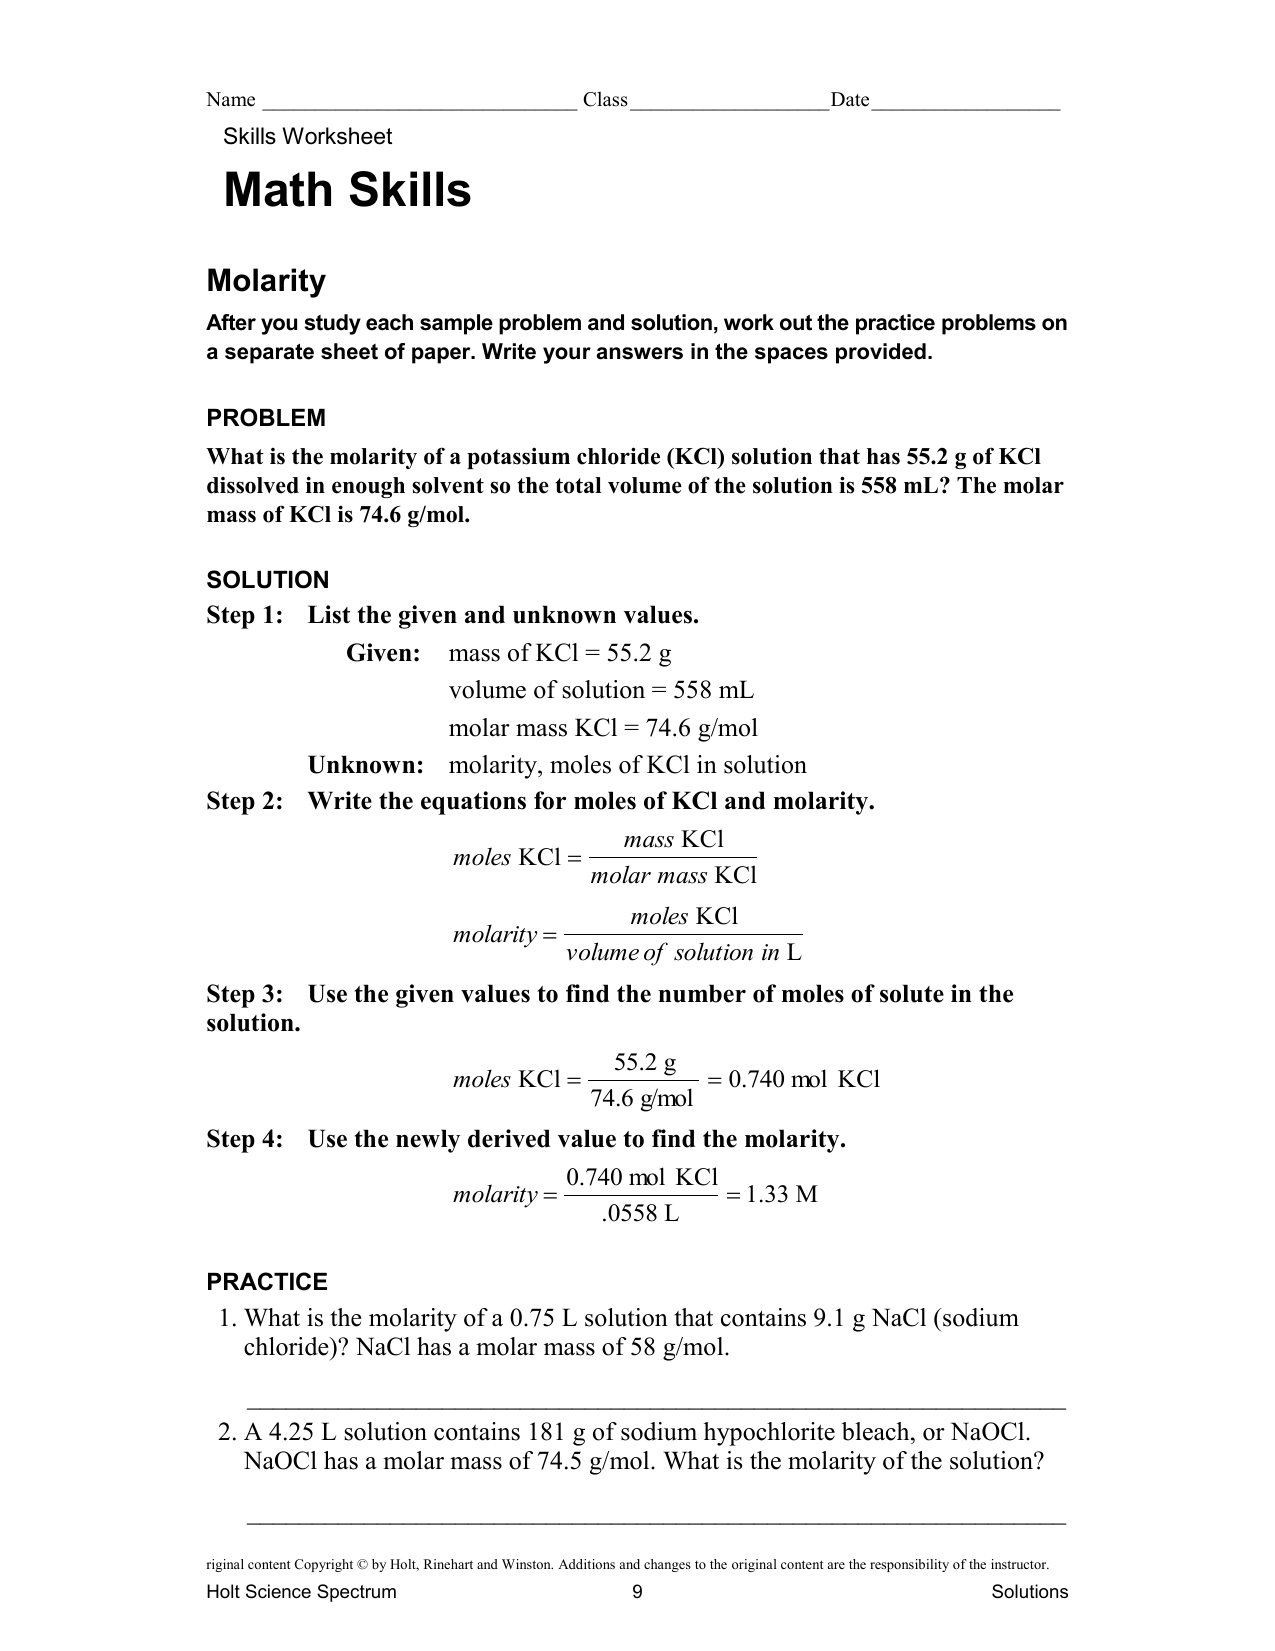 Fillable Online Molarity Worksheet  1 Fax Email Print   PDFfiller additionally Solutions Worksheet  1  Molarity Molar M of M       Date as well stoichiometry worksheets answer key – trungcollection together with Molarity Calculations Worksheet   holidayfu further Half Life Calculations Worksheet Answers ly Nuclear Chemistry as well  additionally  likewise chem 11 additionally Molar M Practice Worksheet likewise Molarity Practice Problems Worksheet for 11th   Higher Ed   Lesson furthermore Molarity Practice Worksheet   Harrison High Pages 1   19 besides Quiz   Worksheet   How to Calculate Molarity and Molality furthermore Drawing atoms Worksheet Answer Key Phase Diagram Worksheet Chemistry besides Free Balancing Equations 3 Worksheet Answers Chemfiesta in addition Molarity Practice HW as well Chem WS on Solution  Stefan answer Key. on molarity calculations worksheet answer key